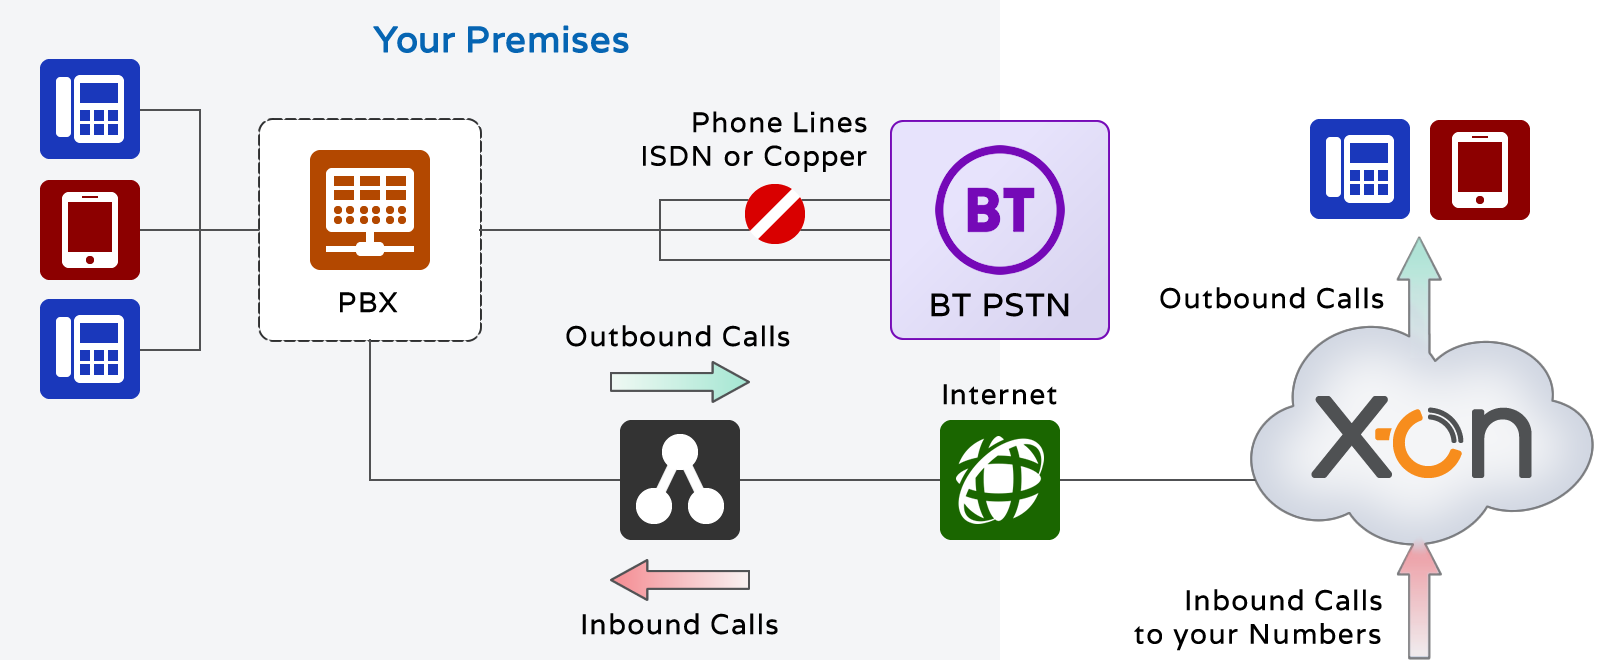 X-on SIP Trunking